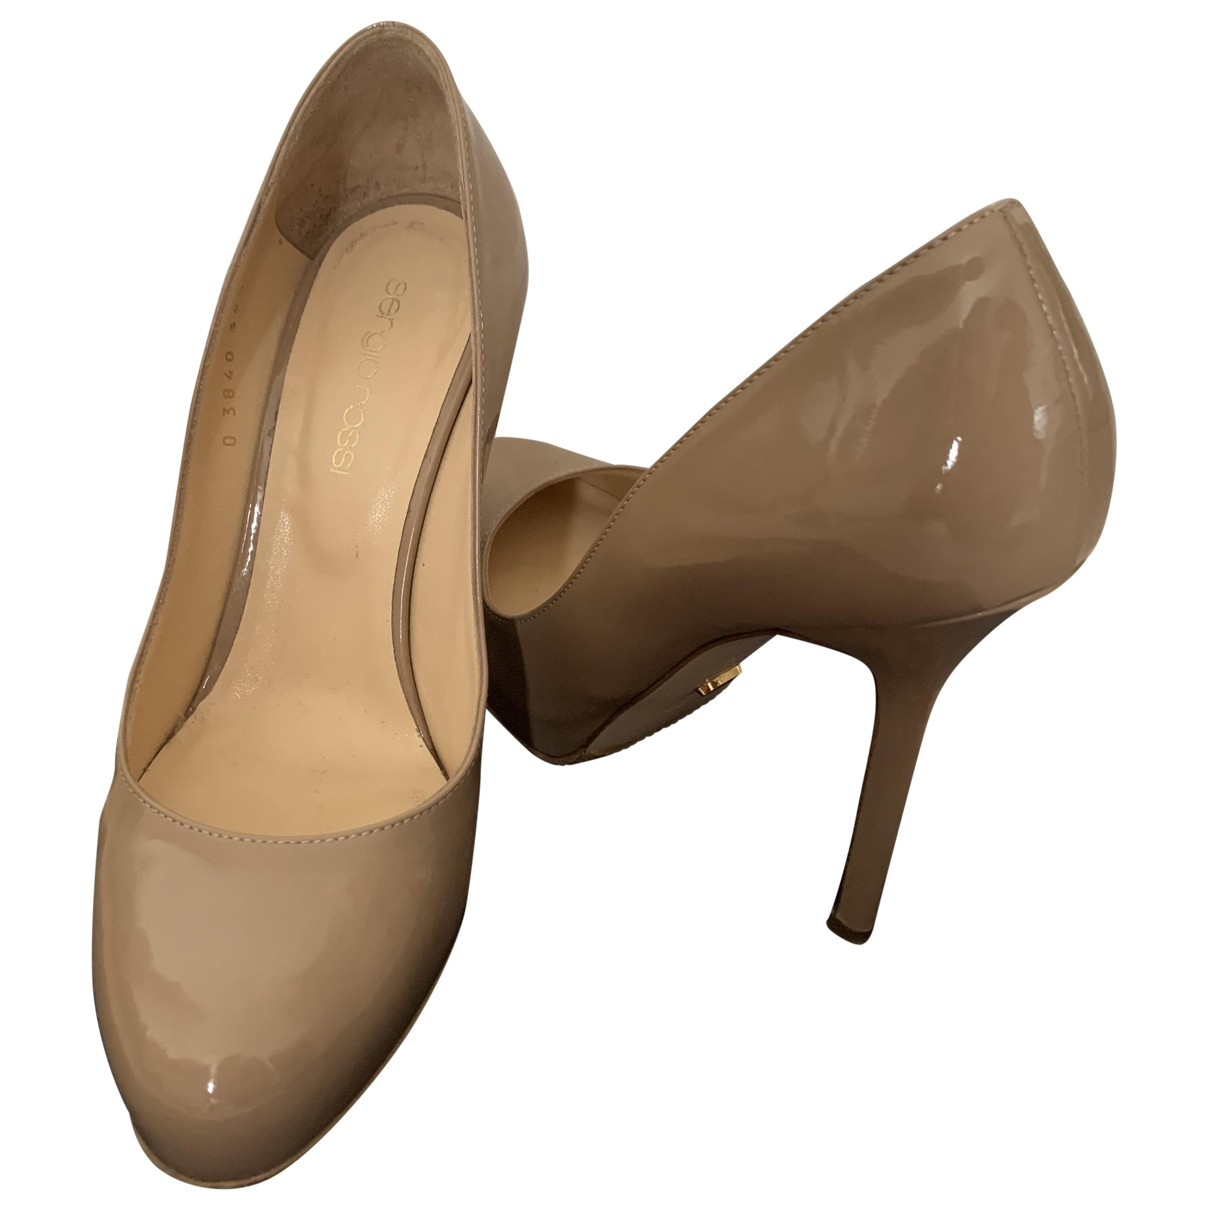 Sergio Rossi N Beige Leather Heels for Women 35.5 IT